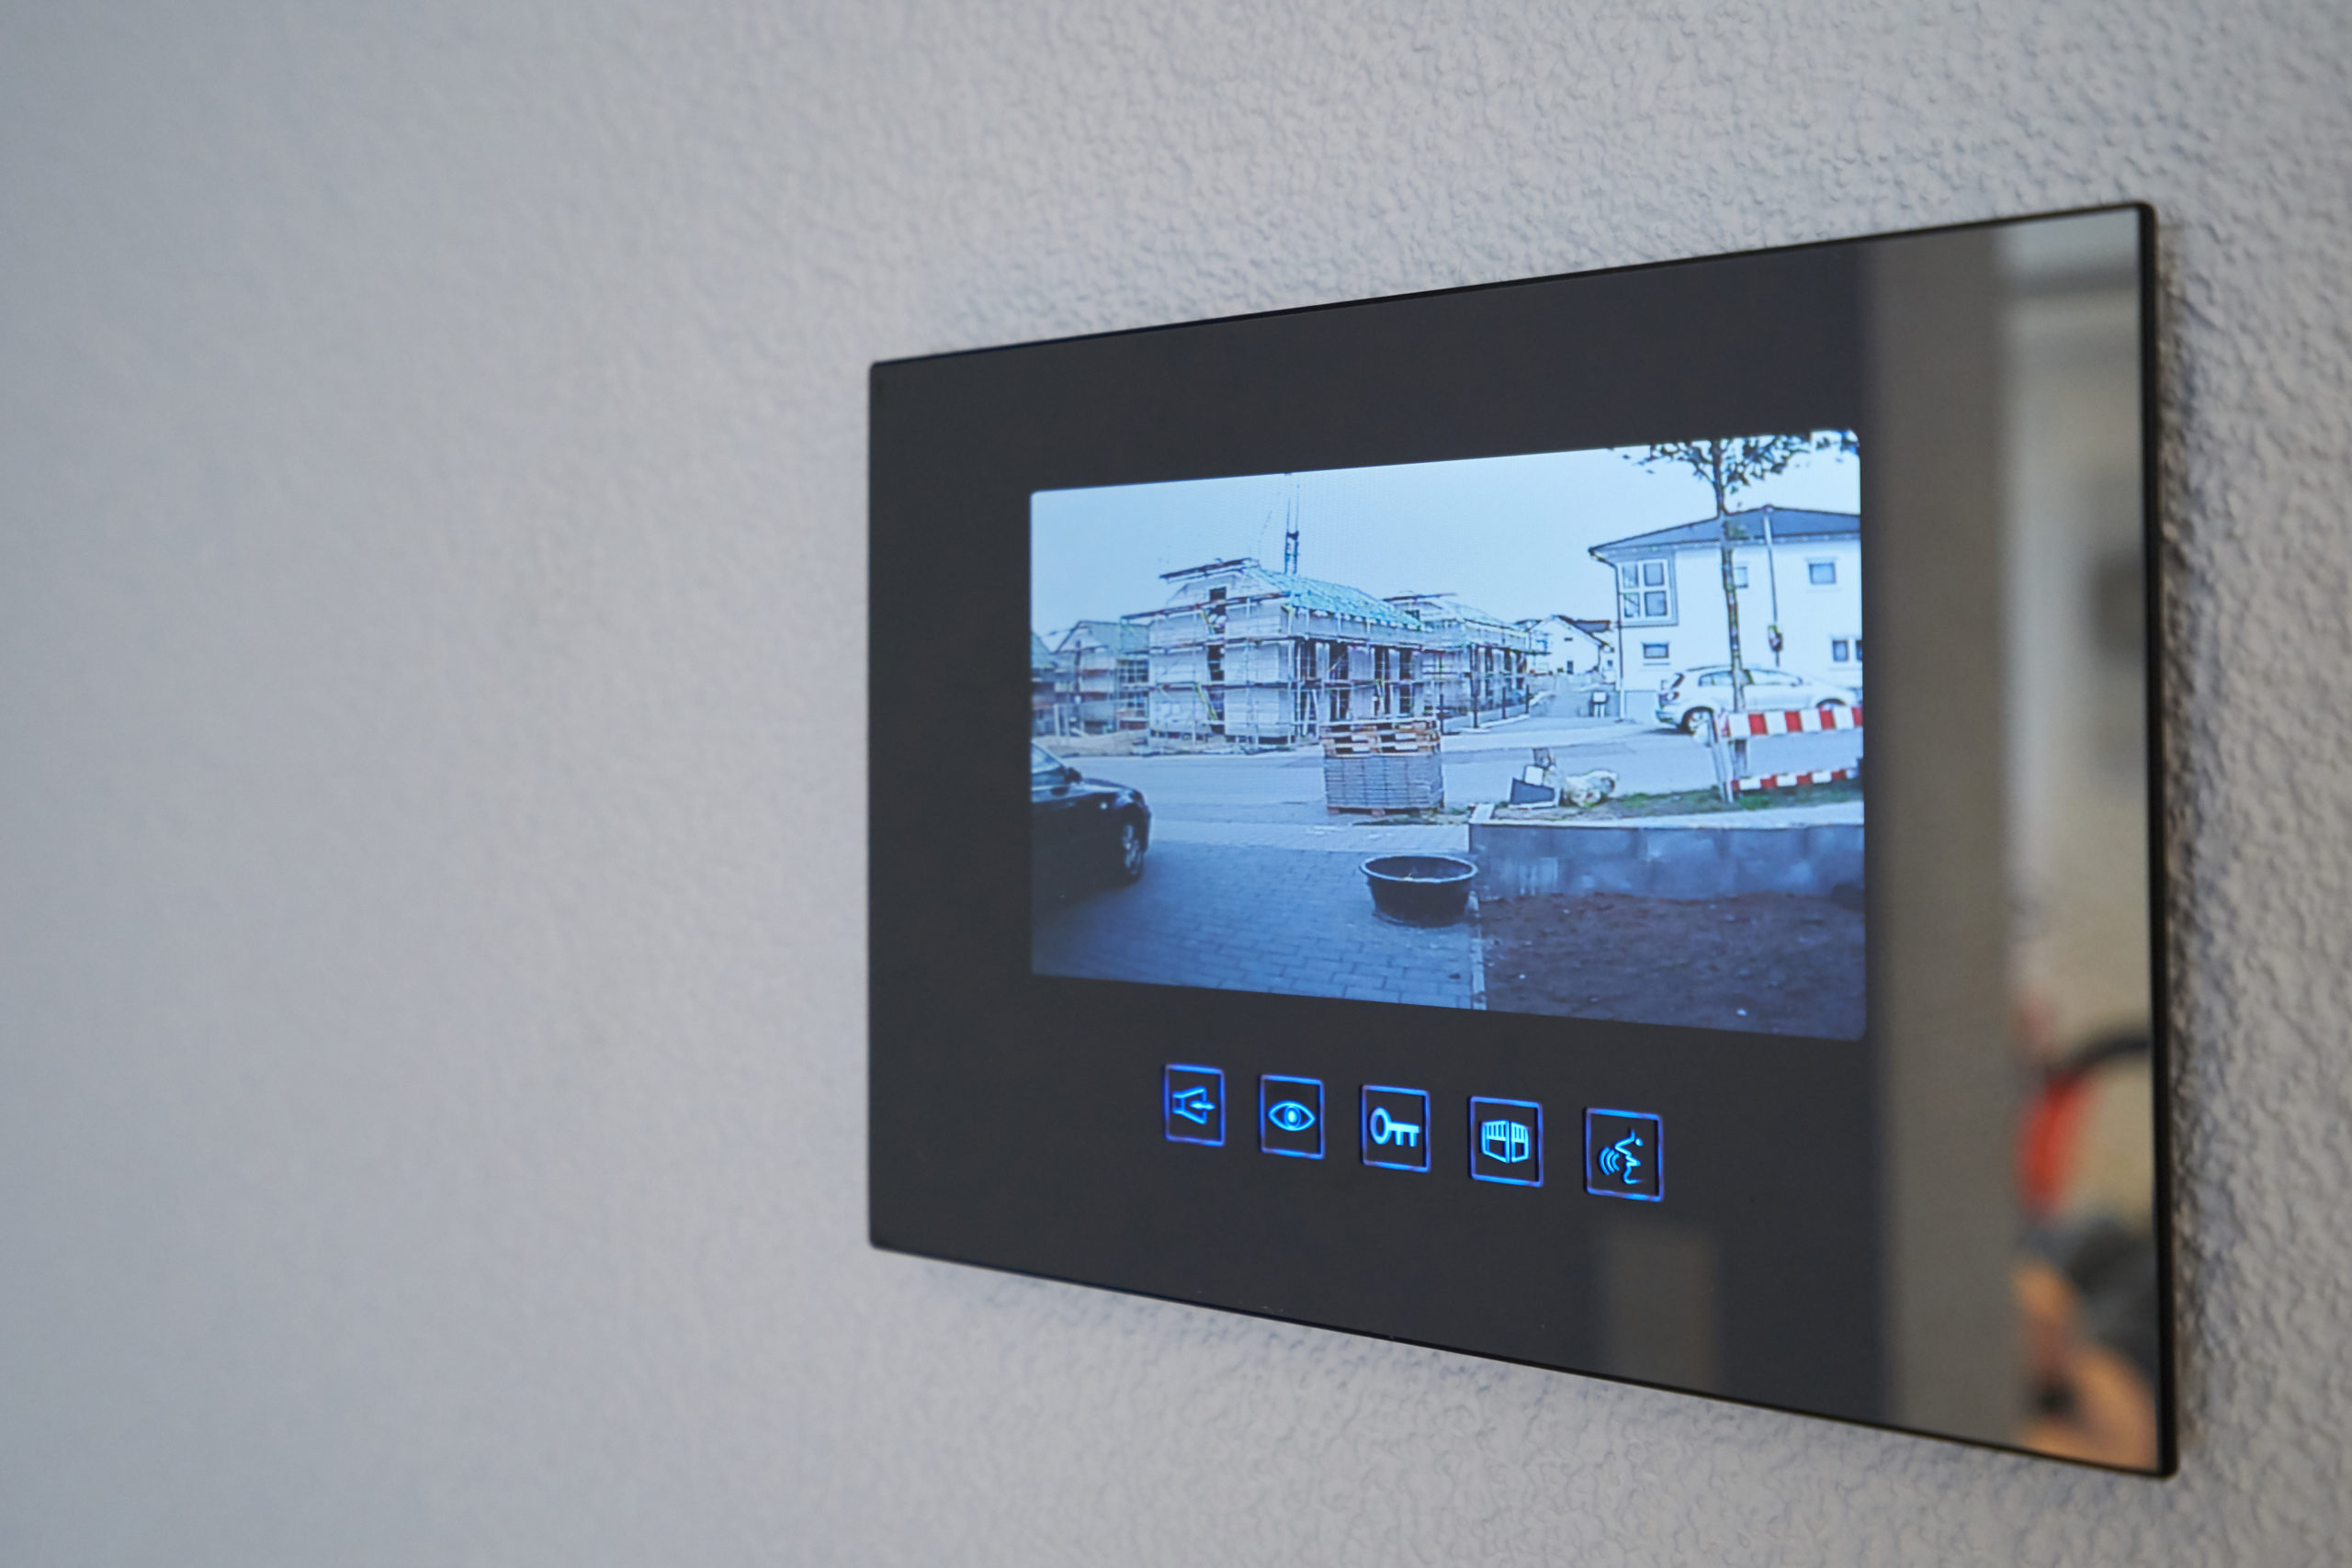 Intercom with video image mounted on the wall in the house.